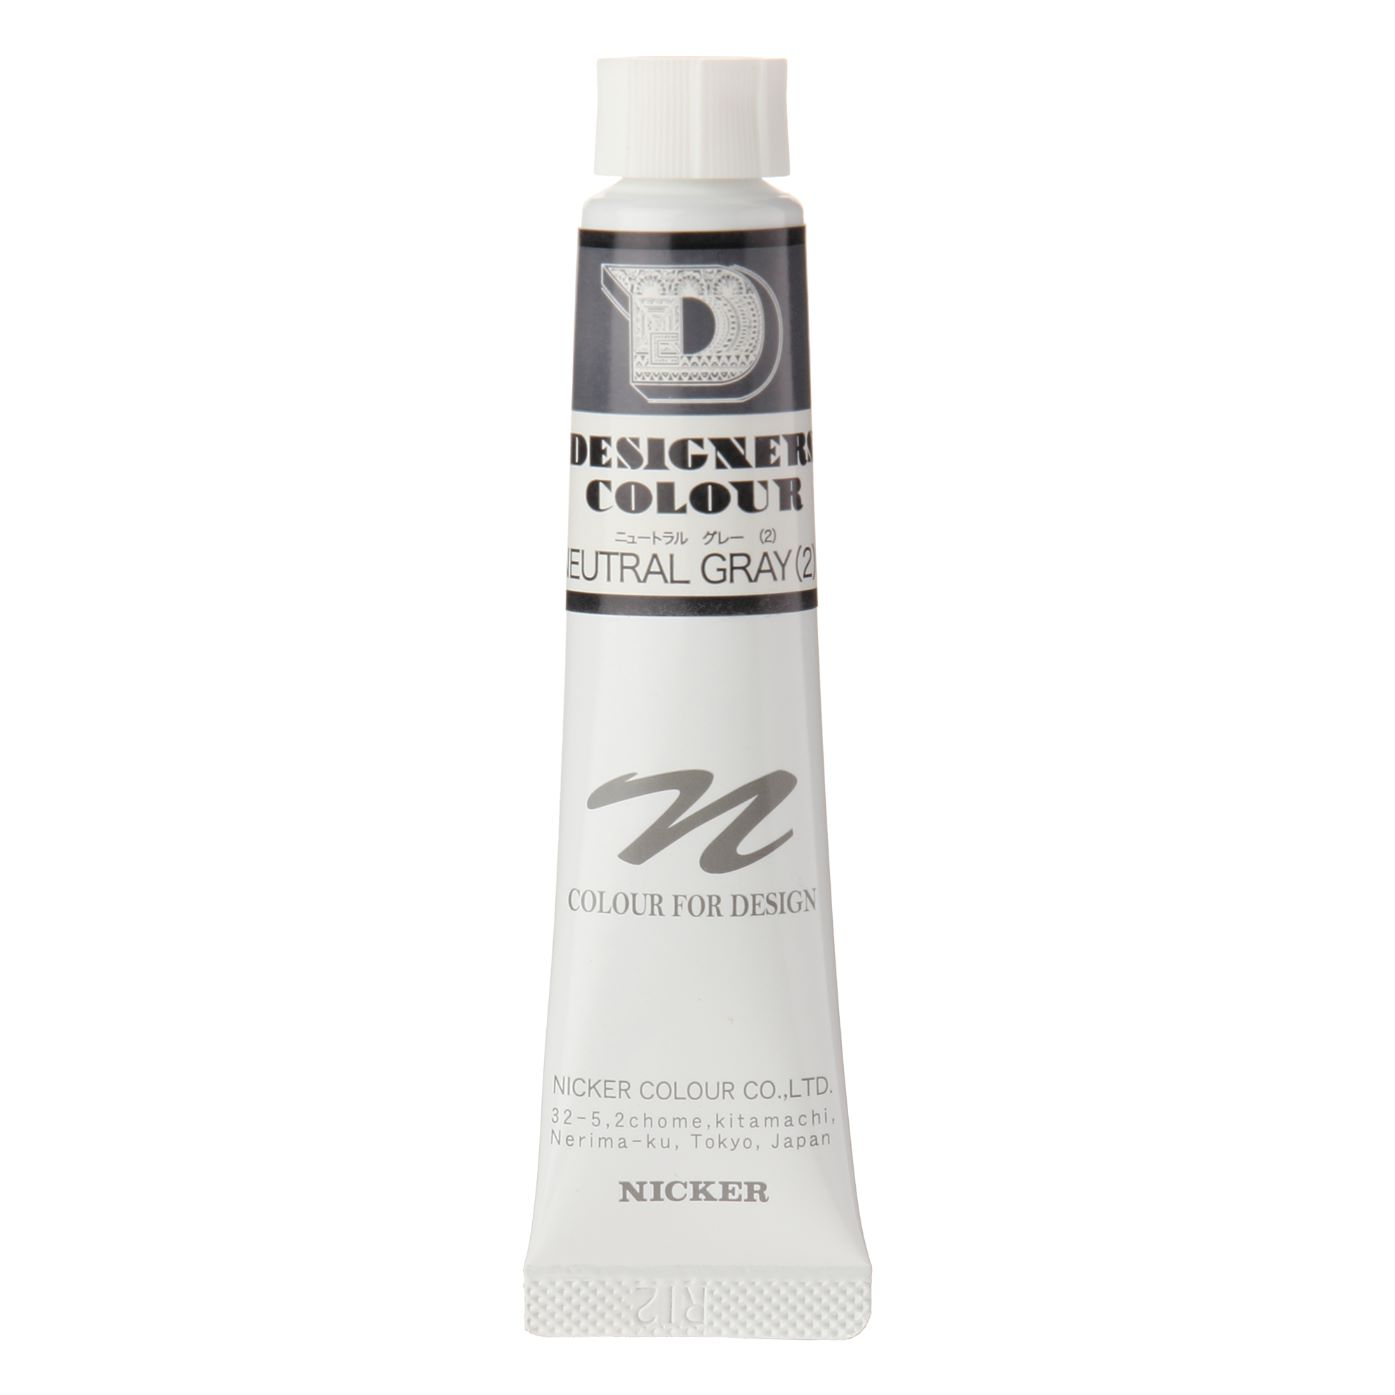 DESIGNERS COLOUR 20ml 597 NEUTRAL GRAY(2)